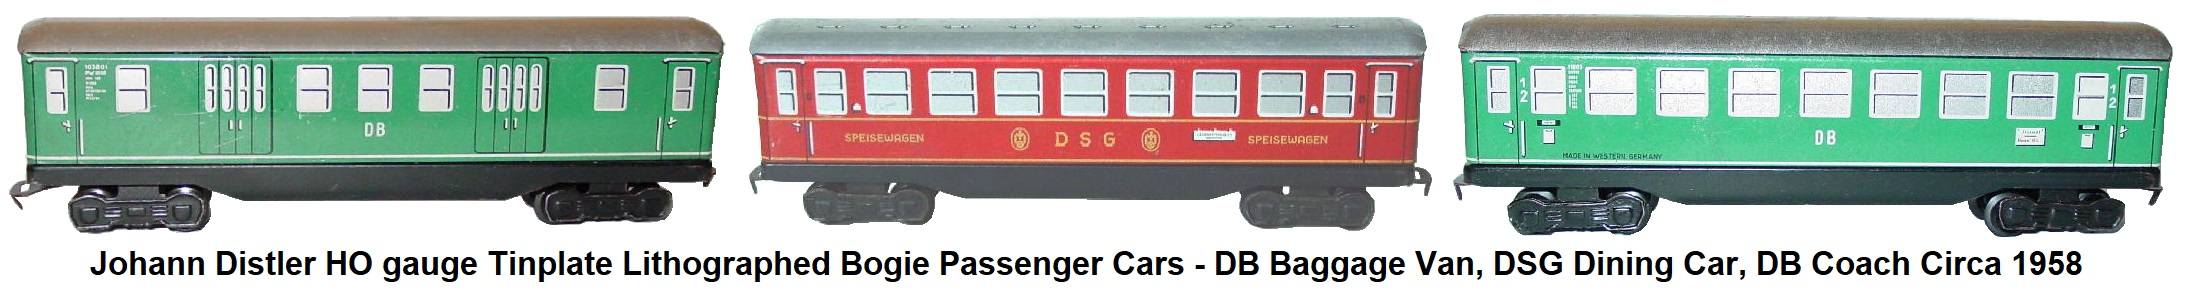 Johann Distler Nuremberg, HO gauge tinplate lithographed passenger set from 1958